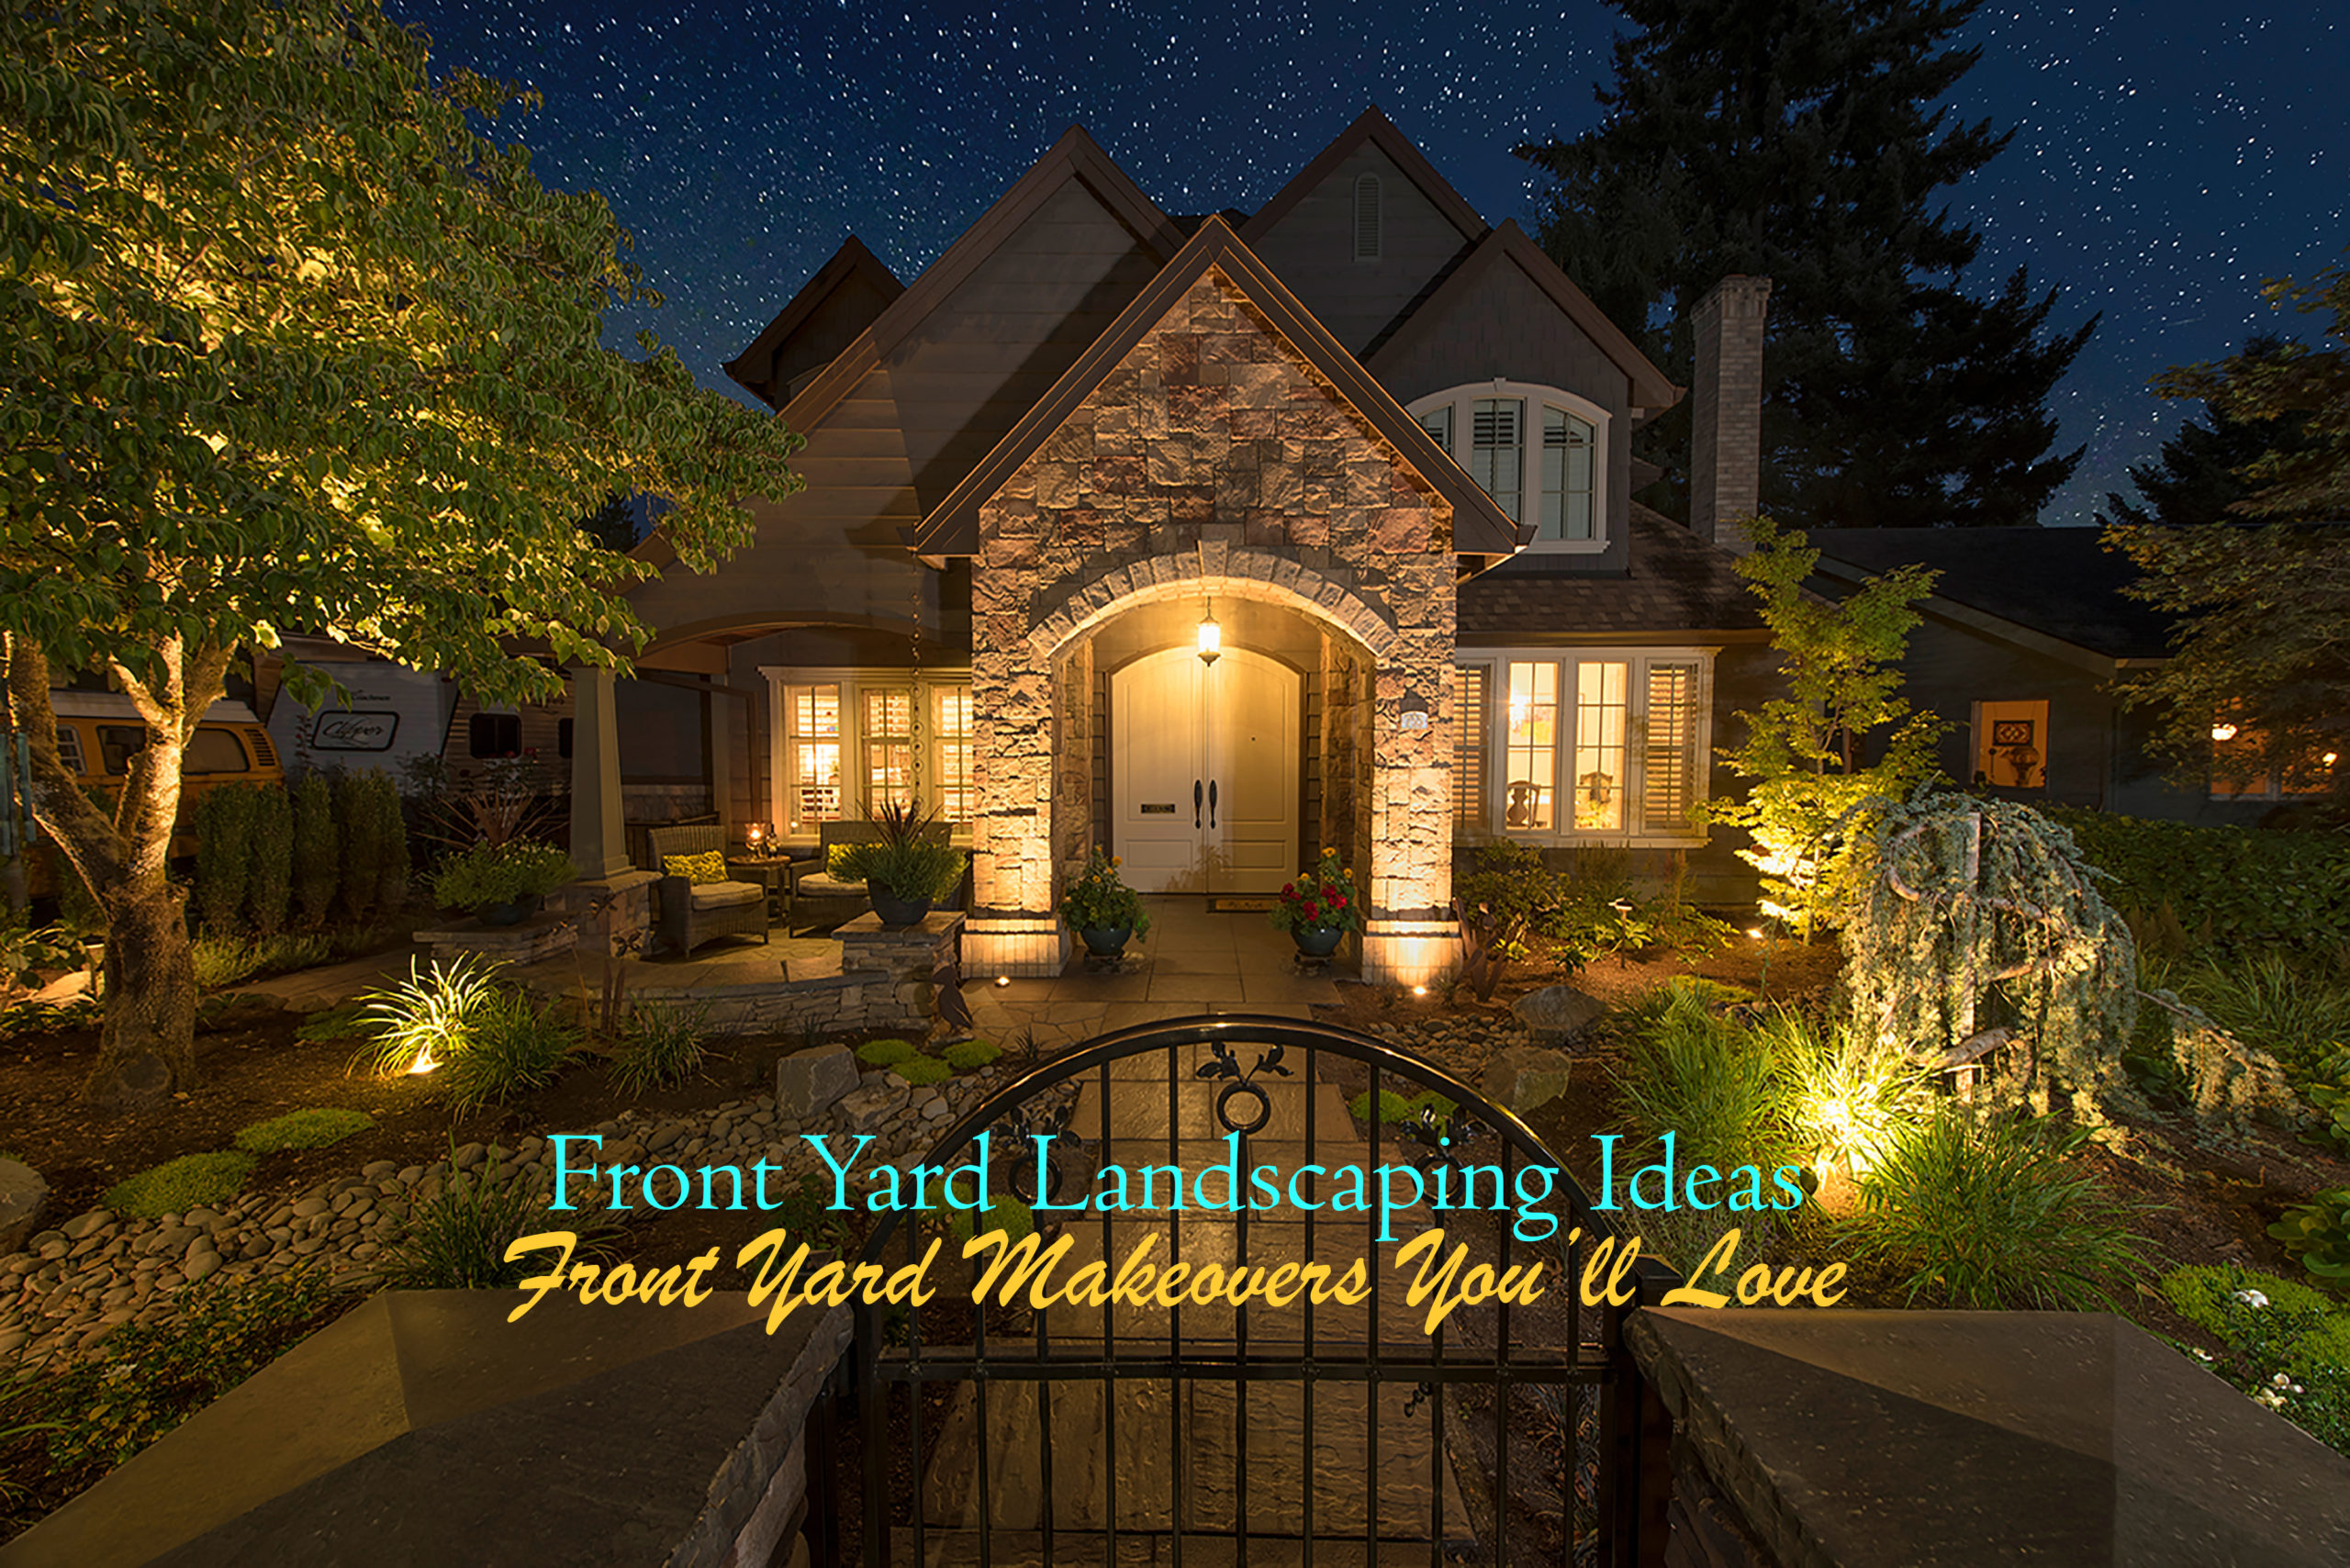 Front Yard Landscaping Ideas Paradise Restored Landscaping